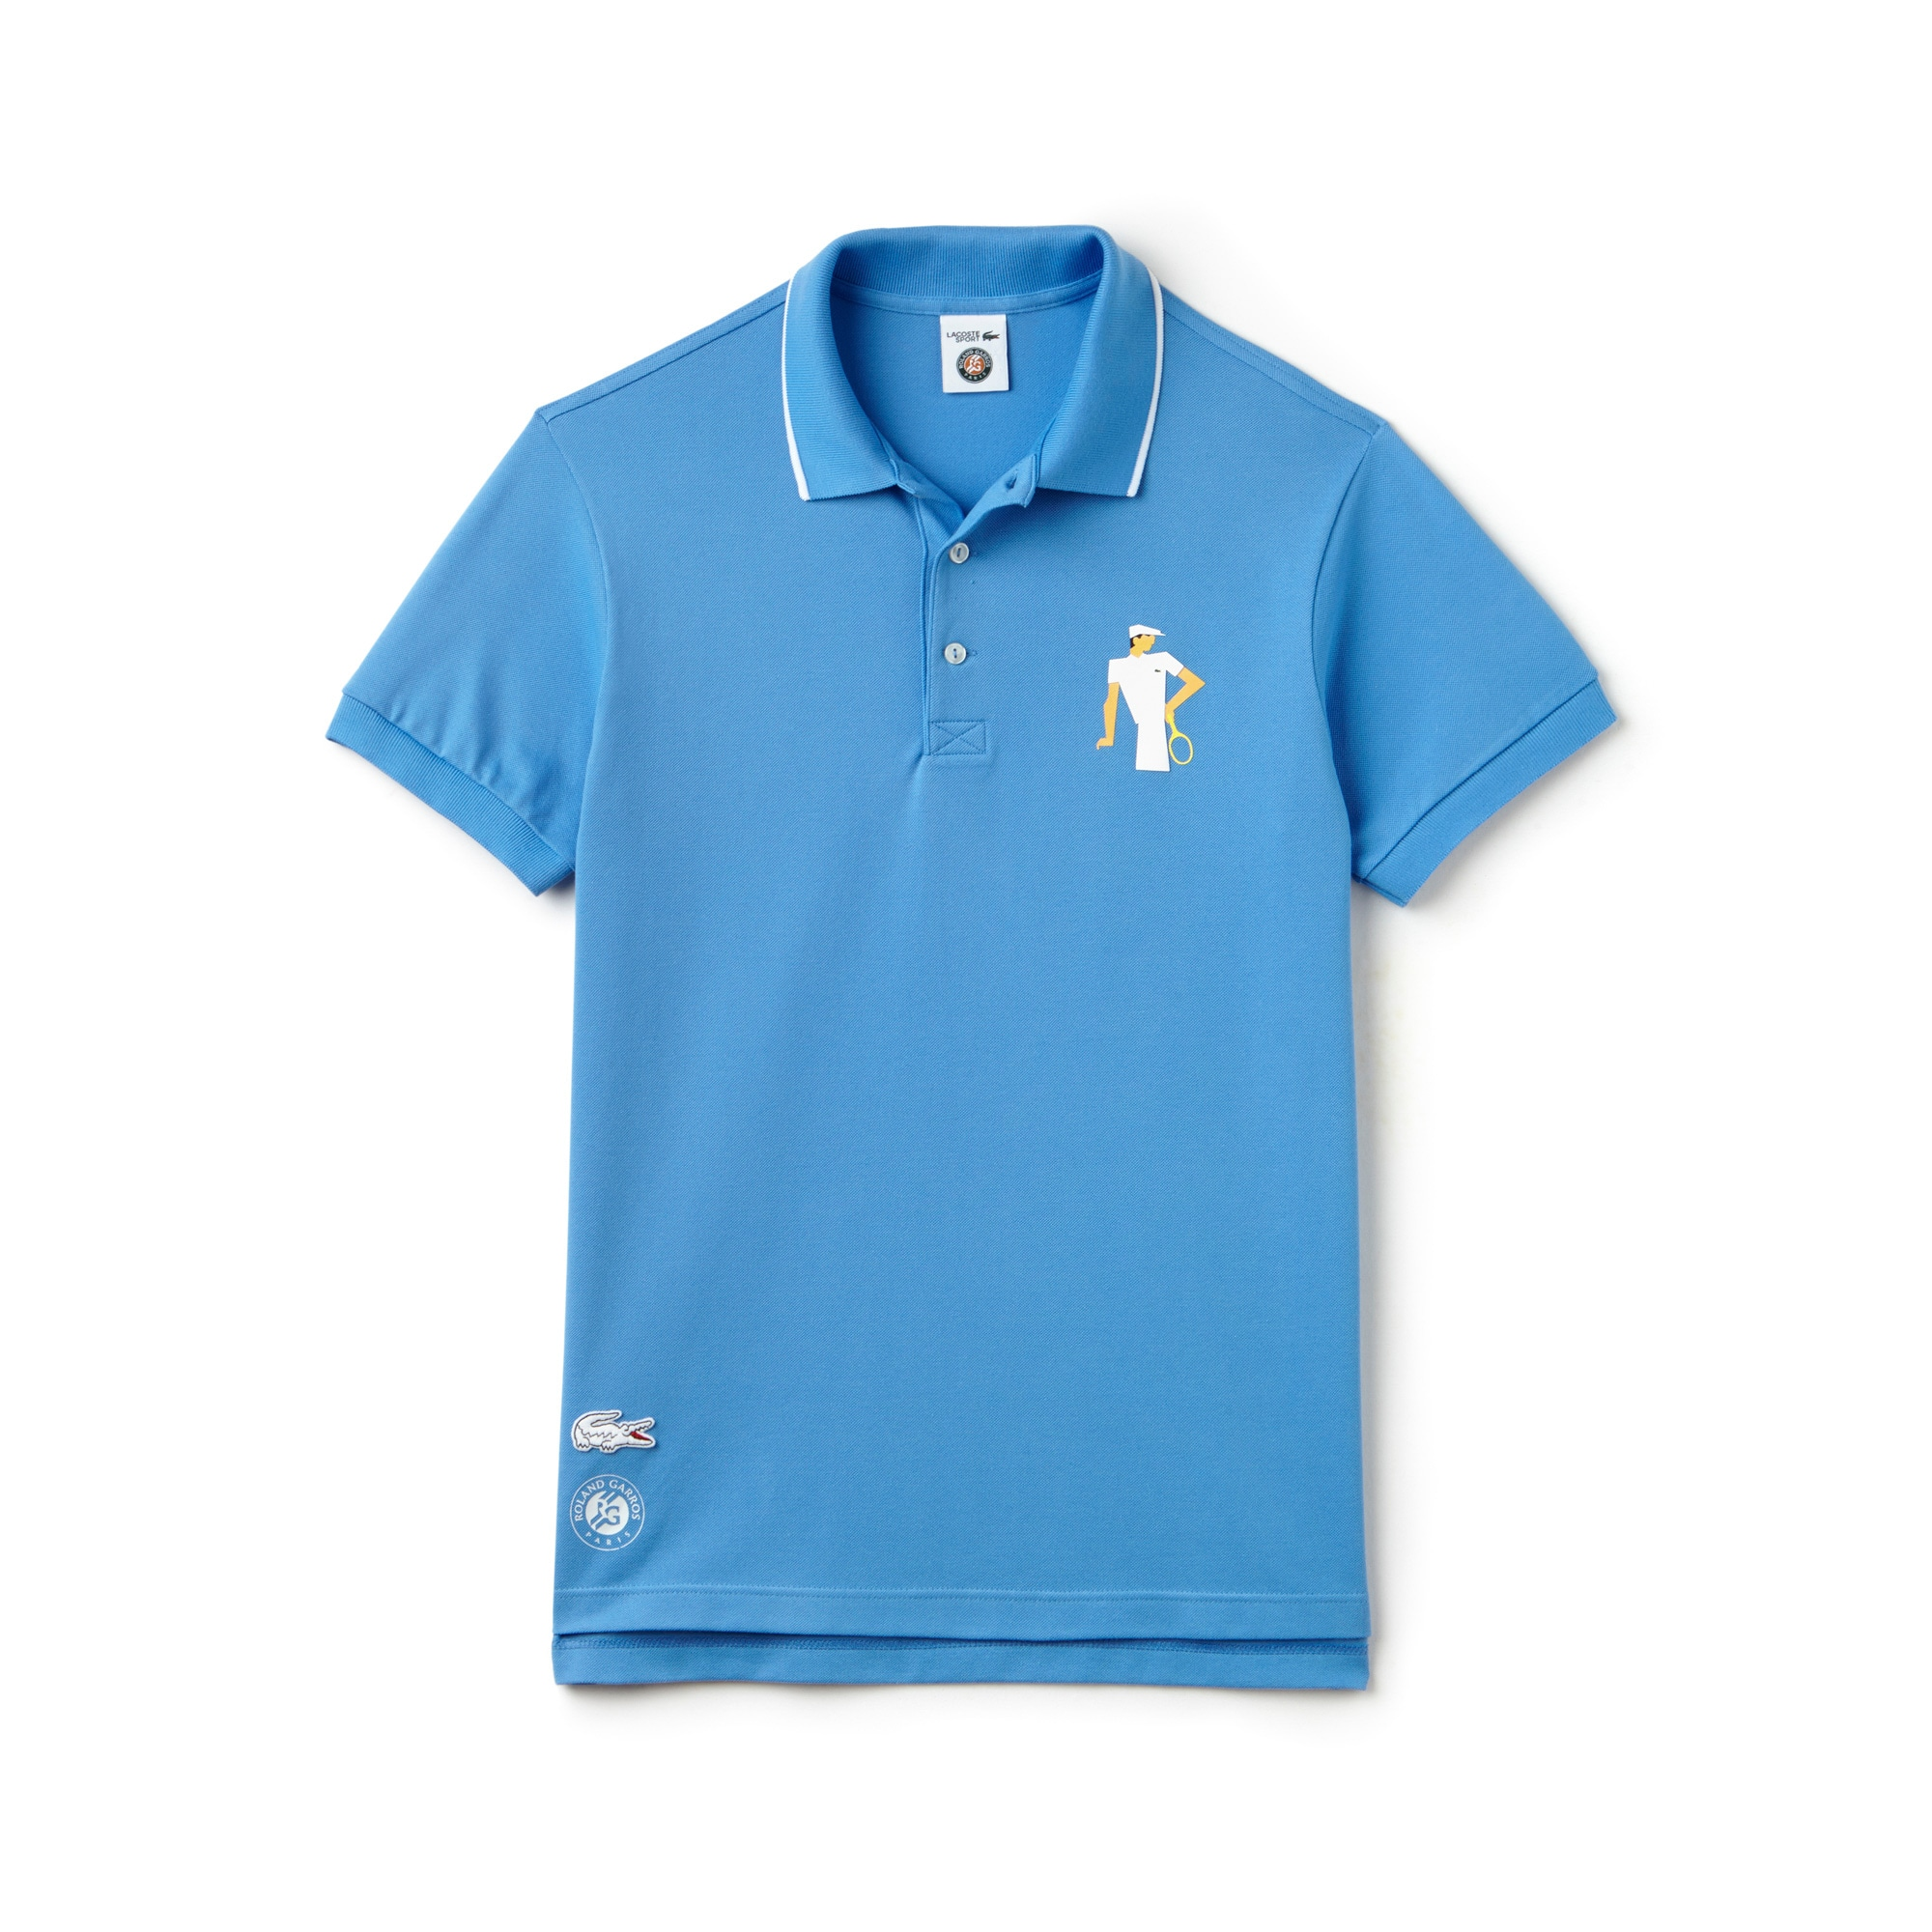 Men's SPORT French Open Player Print Polo Shirt